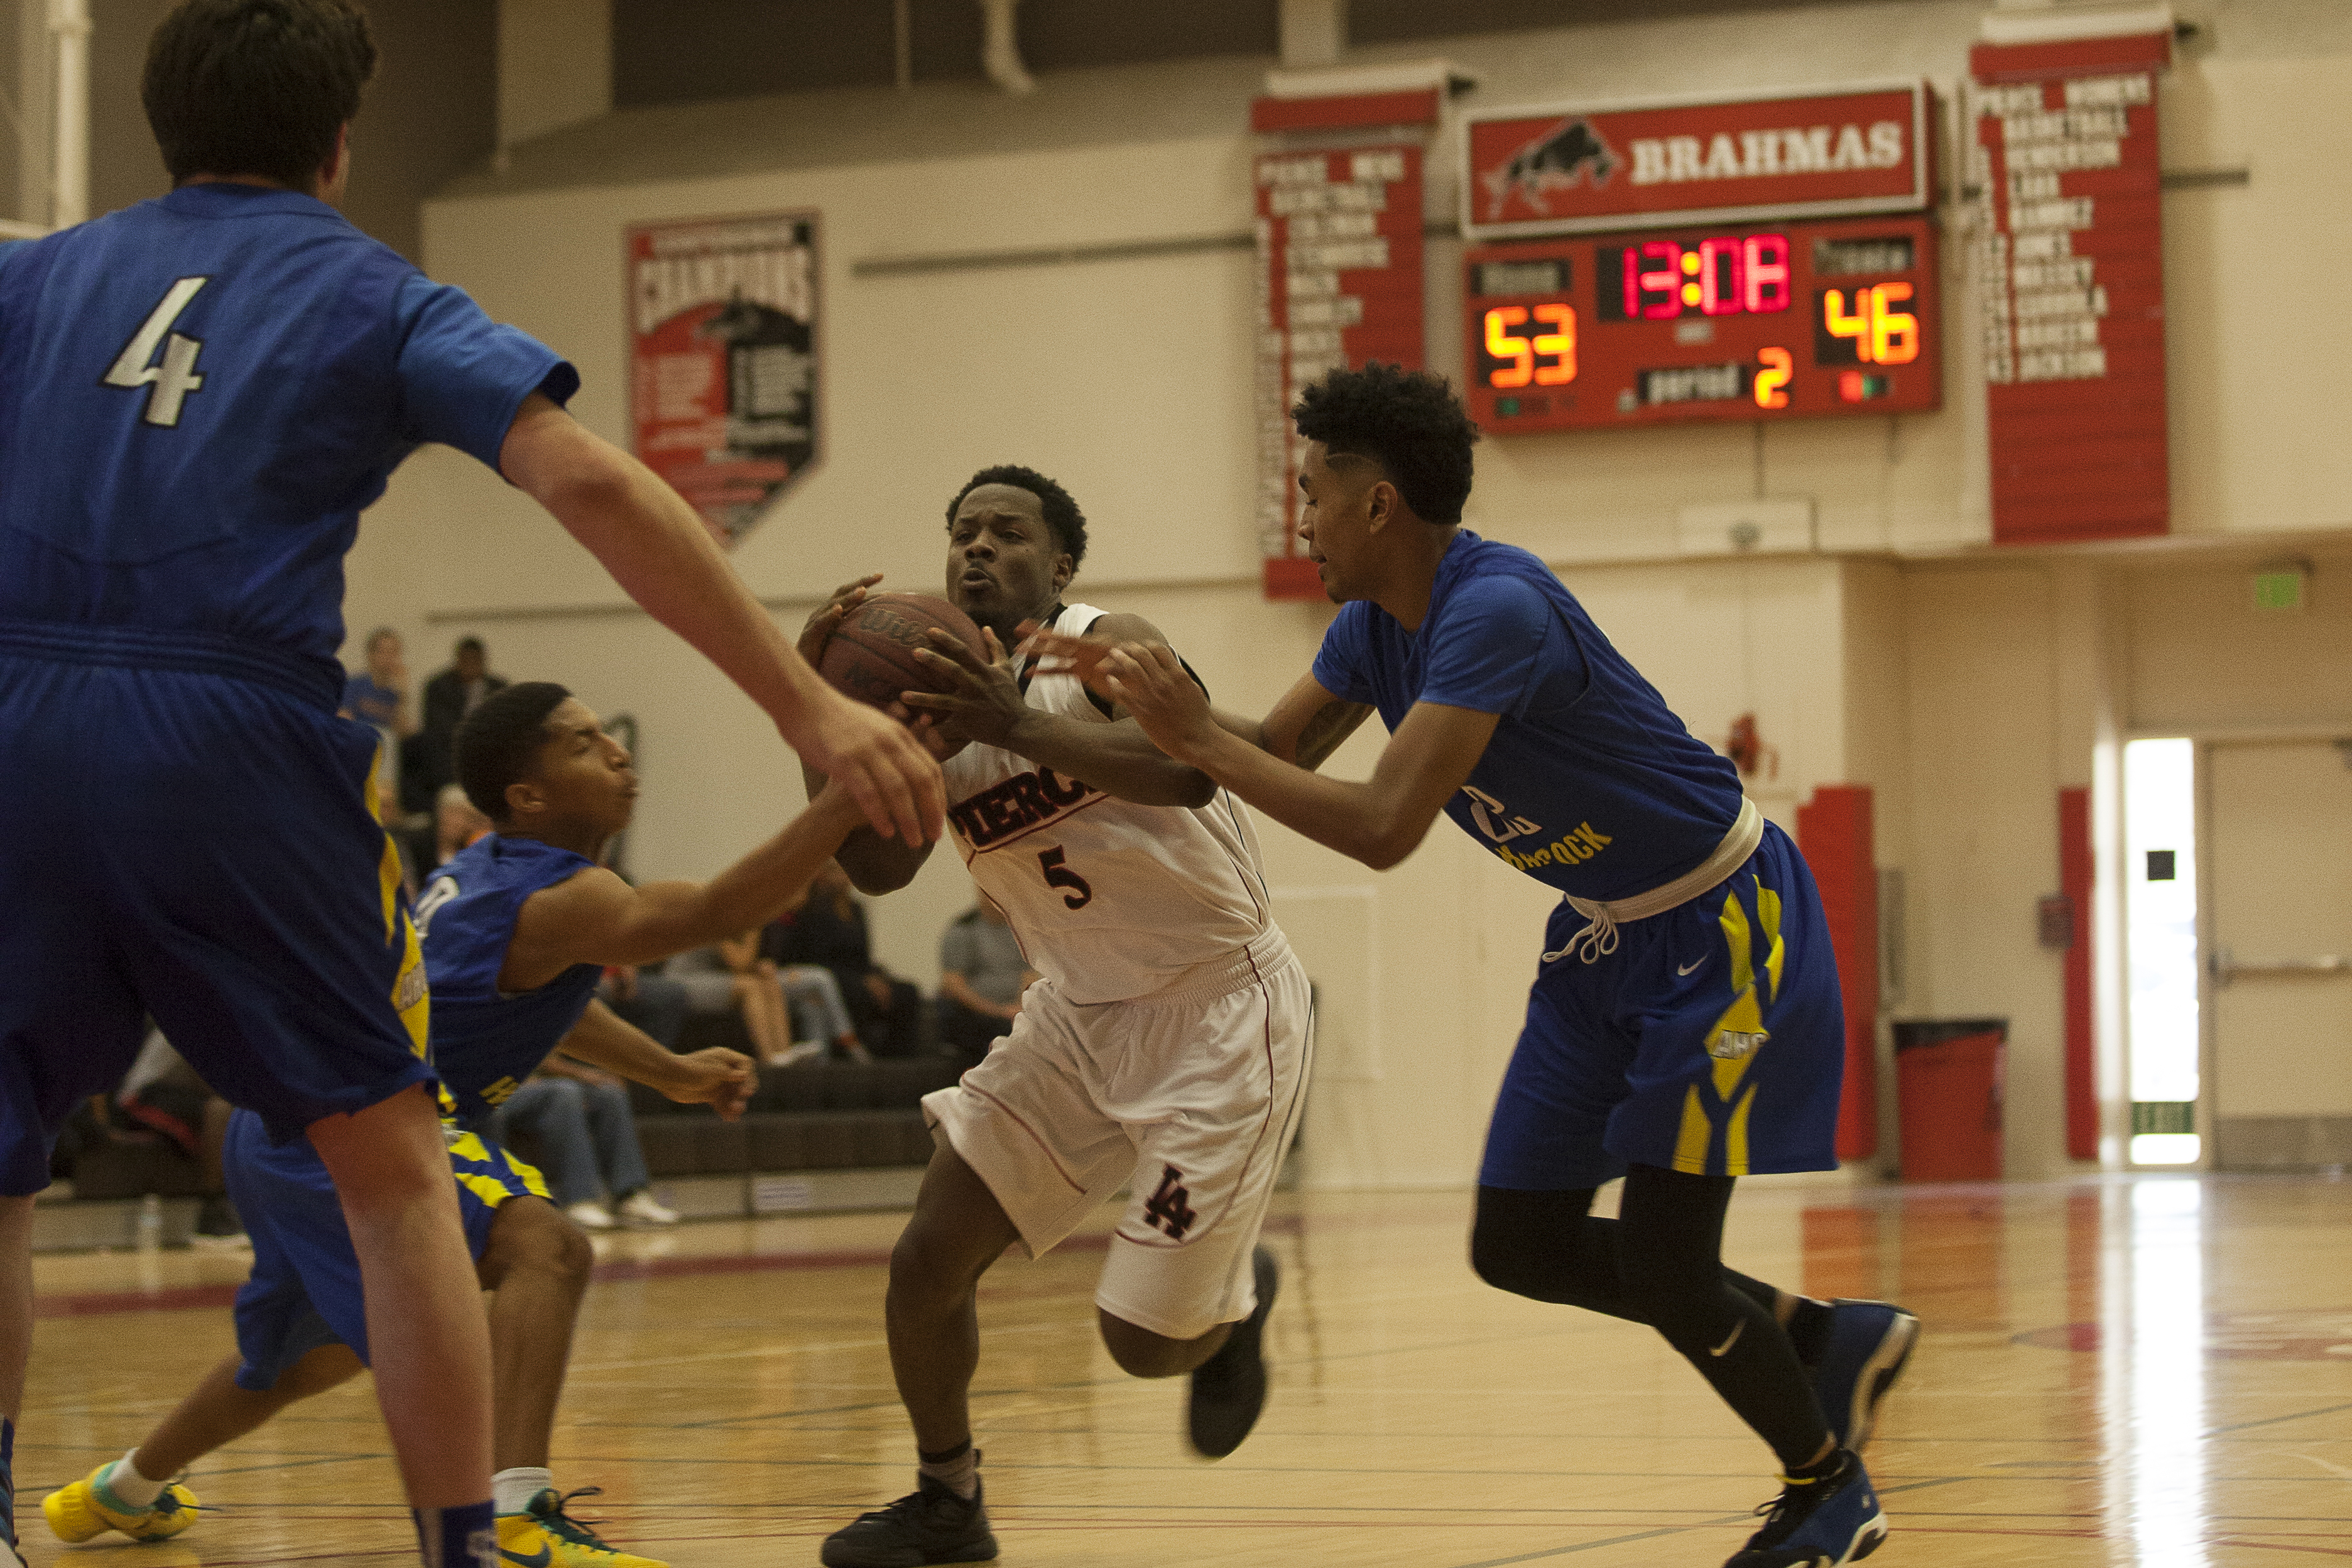 Second win for men's basketball with victory over Allan Hancock College